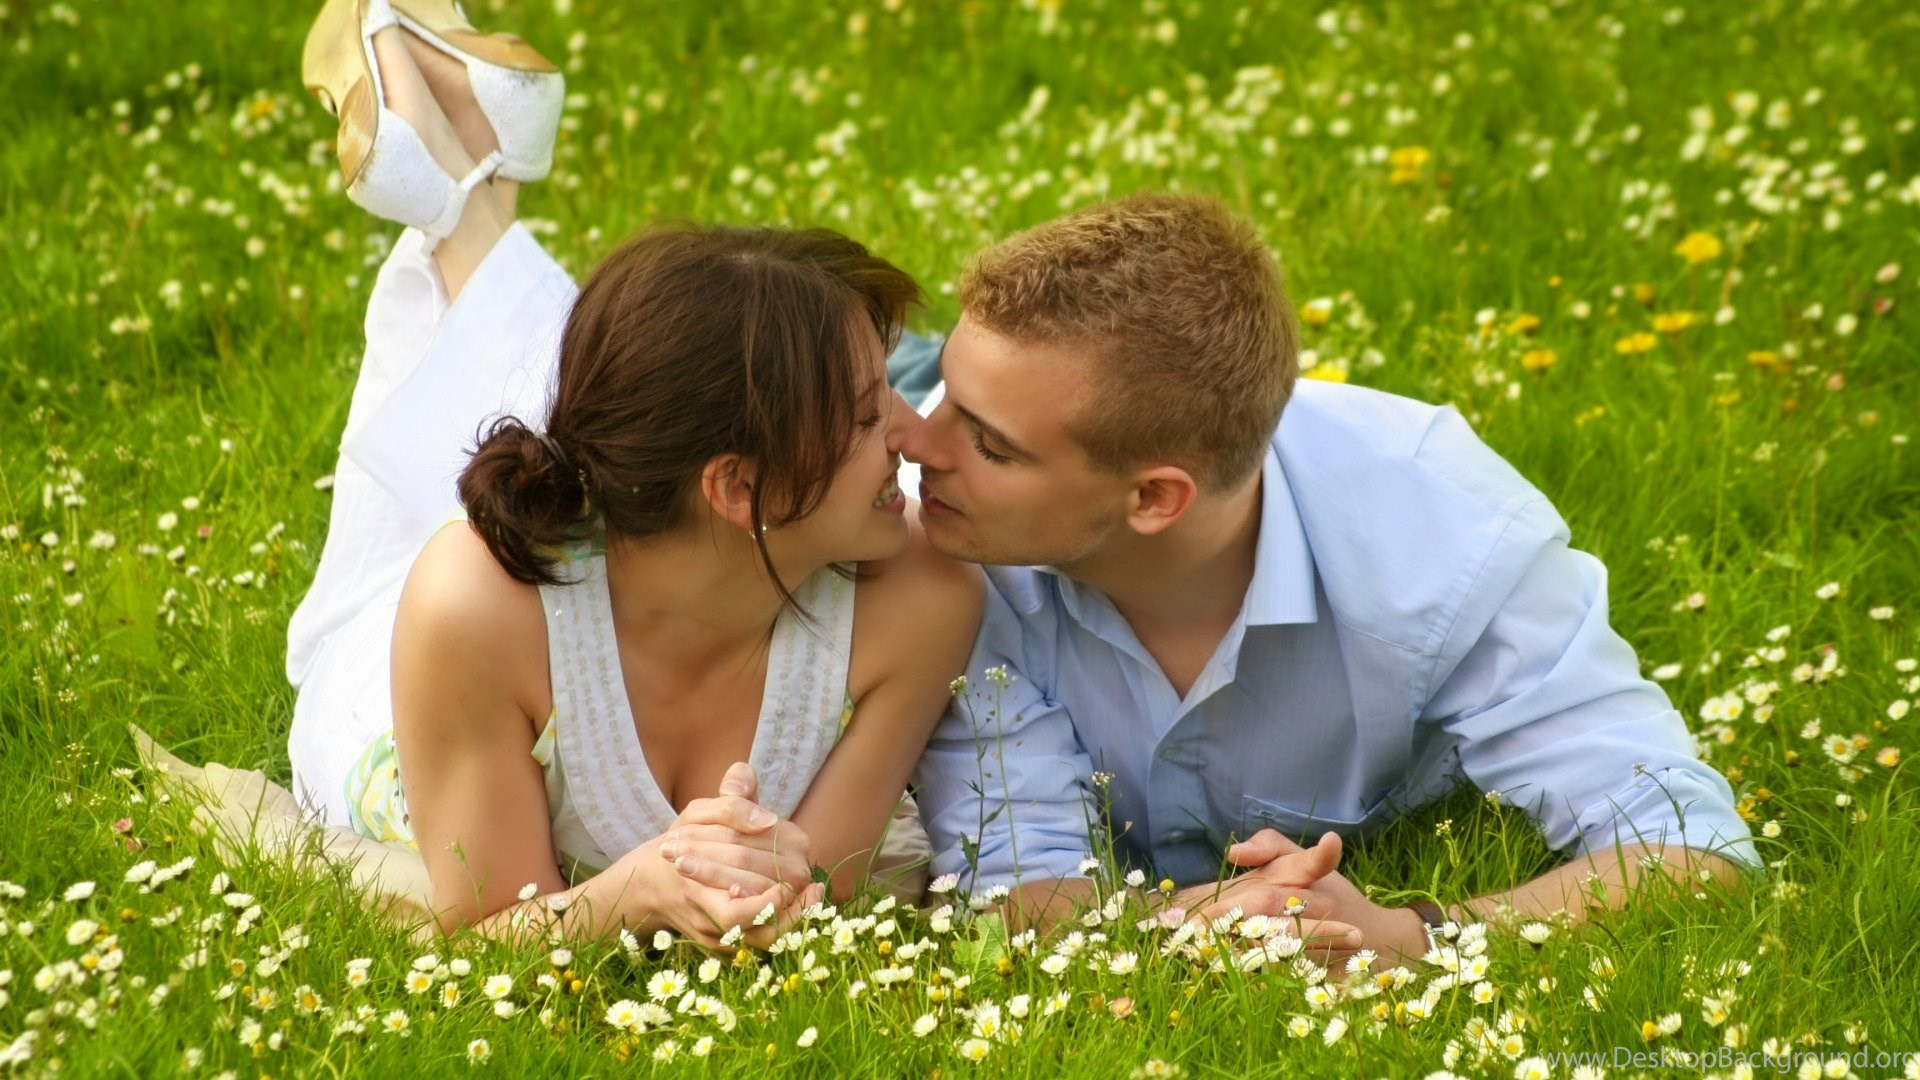 boy girl kiss on grass wallpapers download latest desktop